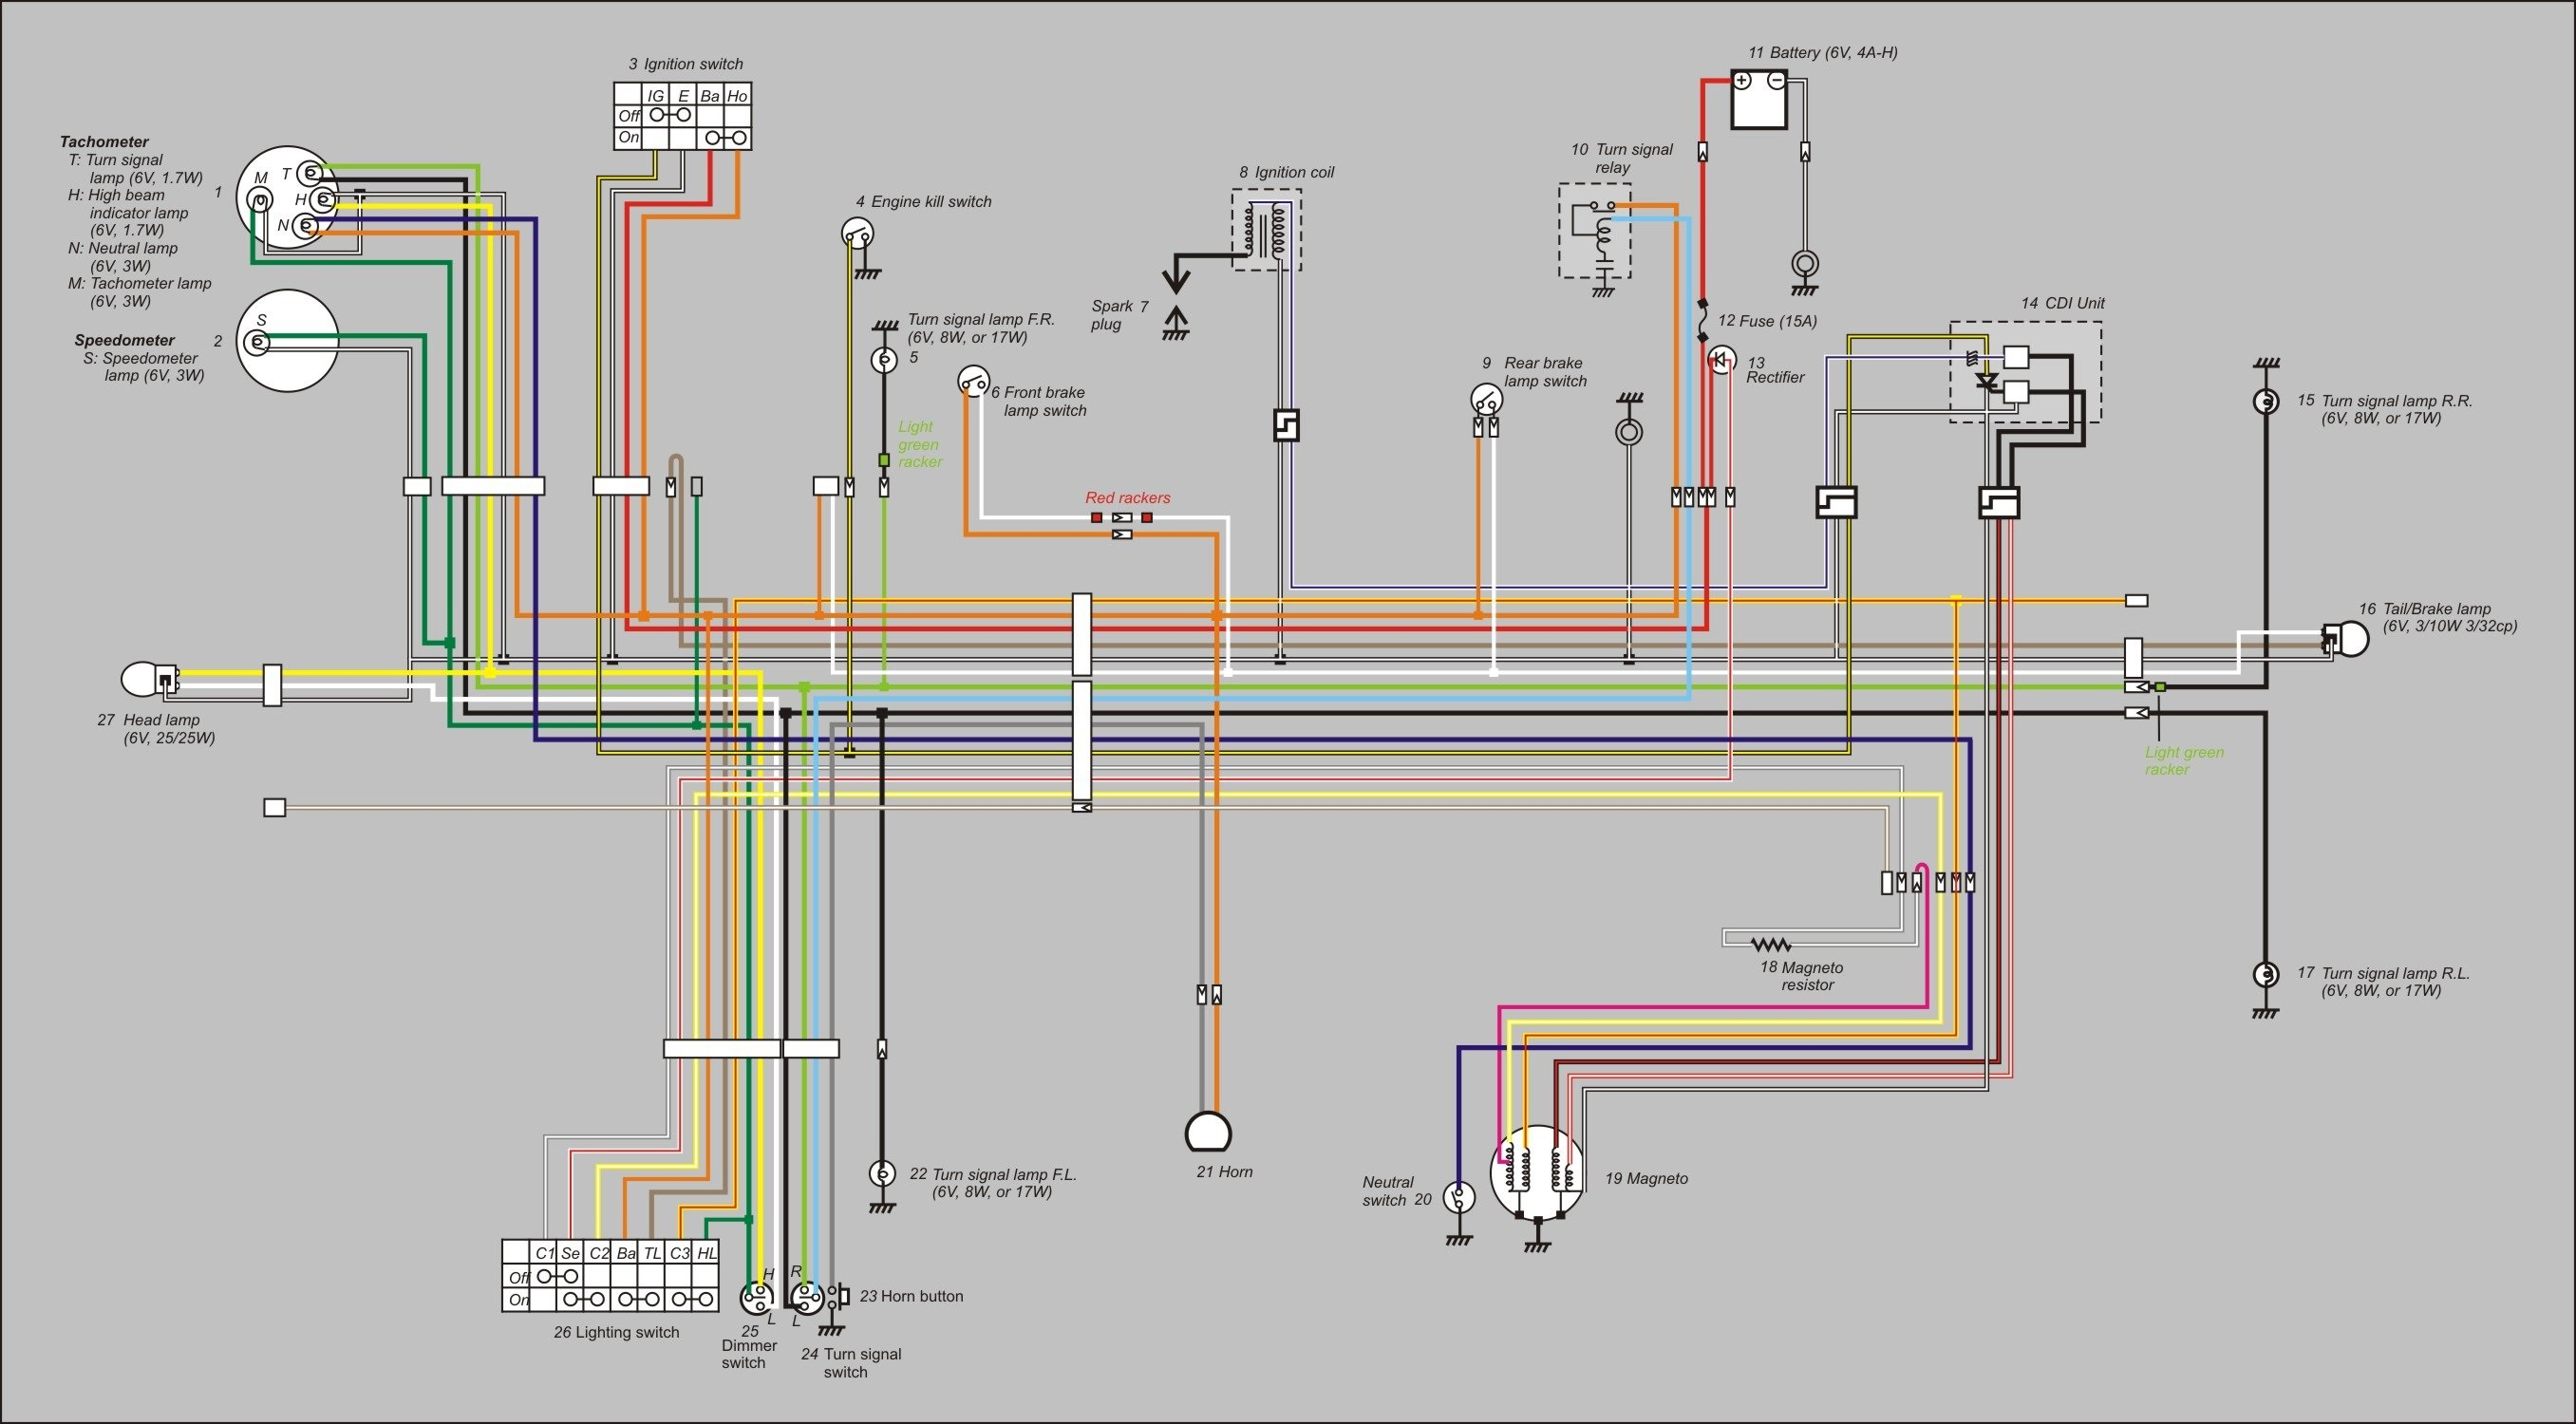 2013-10-16_235928_1 Ktm Wiring Diagram on ktm exc wiring diagram, bmw r100 wiring diagram, ktm 525 wiring diagram, ktm 450 wiring diagram, ktm 300 wiring diagram, ktm 400 wiring diagram, ktm 250 engine diagram, yamaha raptor wiring diagram,